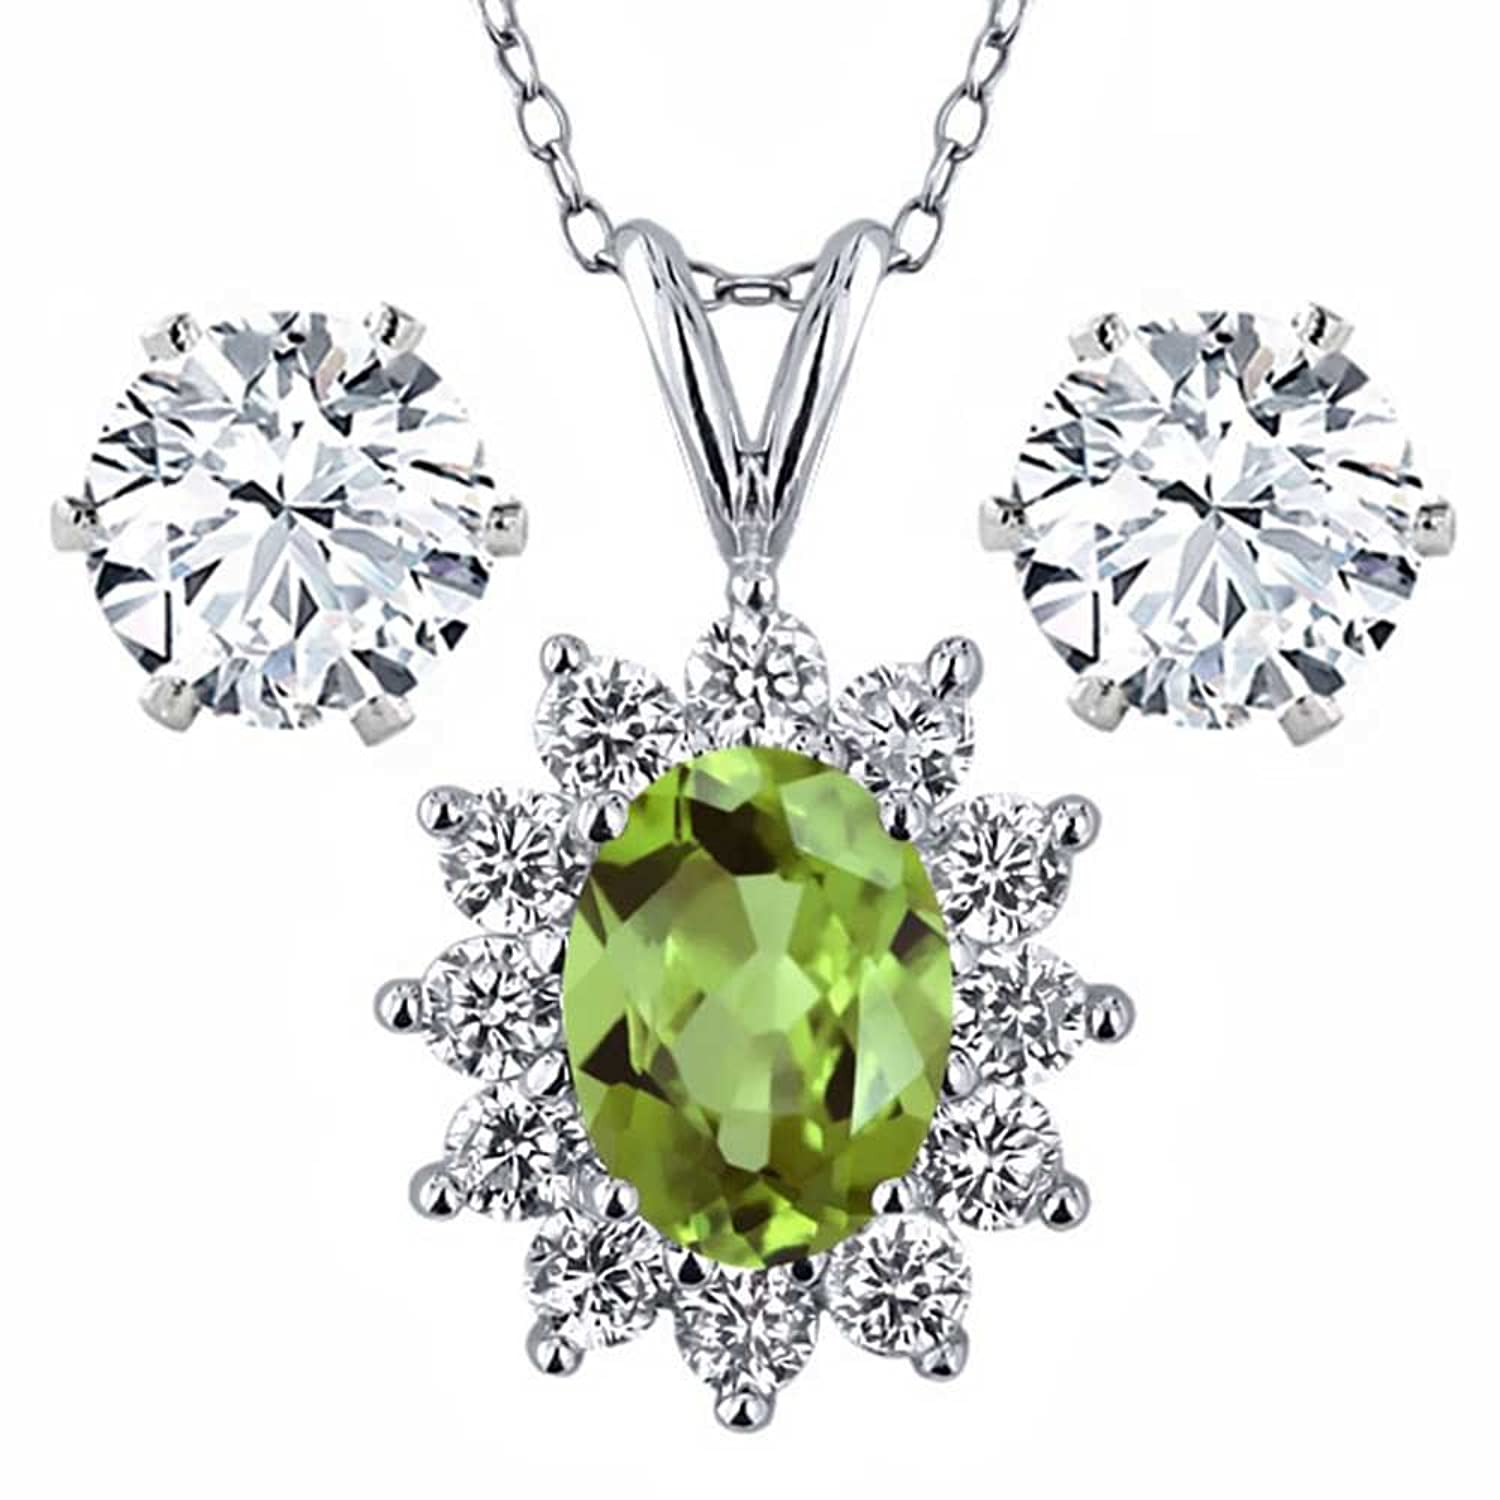 1.93 Ct Oval Green Peridot 925 Sterling Silver Pendant with Gift